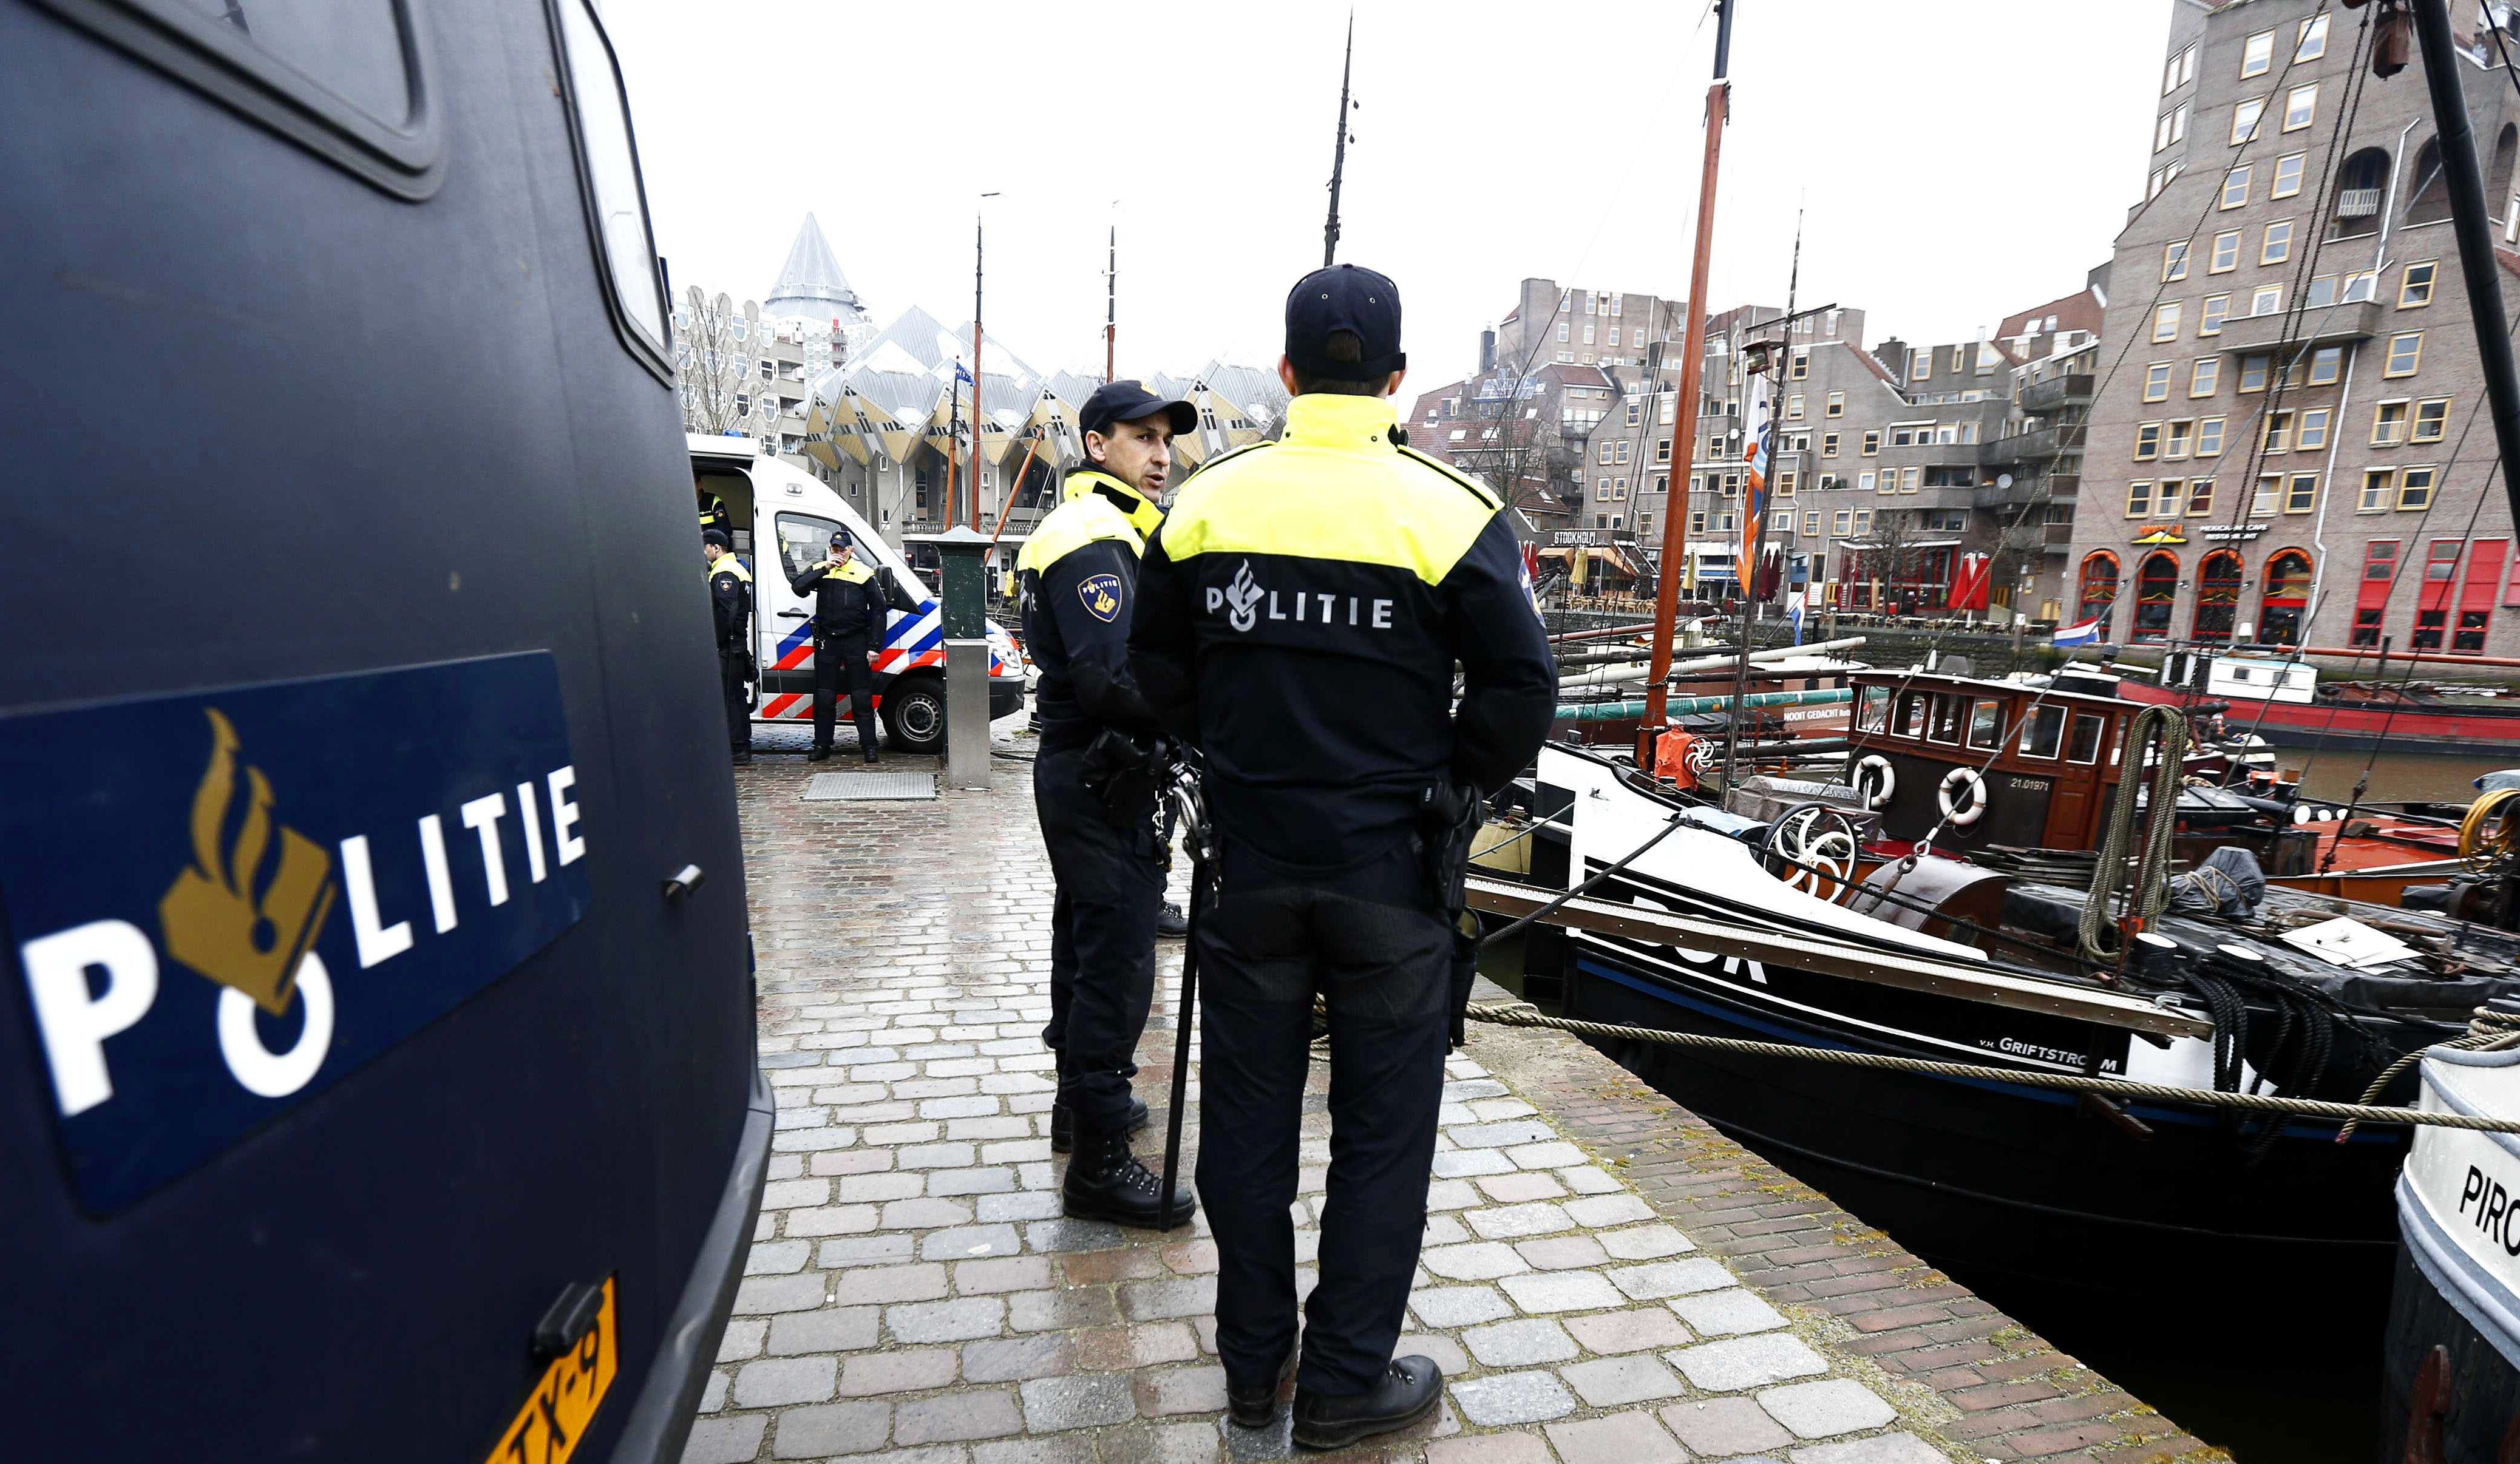 epa04638226 Dutch members of the police force safeguard the historic old port in Rotterdam, Netherlands, 26 February 2015, ahead of the UEFA Europa League round of 32 second leg soccer match between Feyenoord Rotterdam and AS Roma. Fans of AS Roma will be gathered around the port ahead of the match.  EPA/JERRY LAMPEN